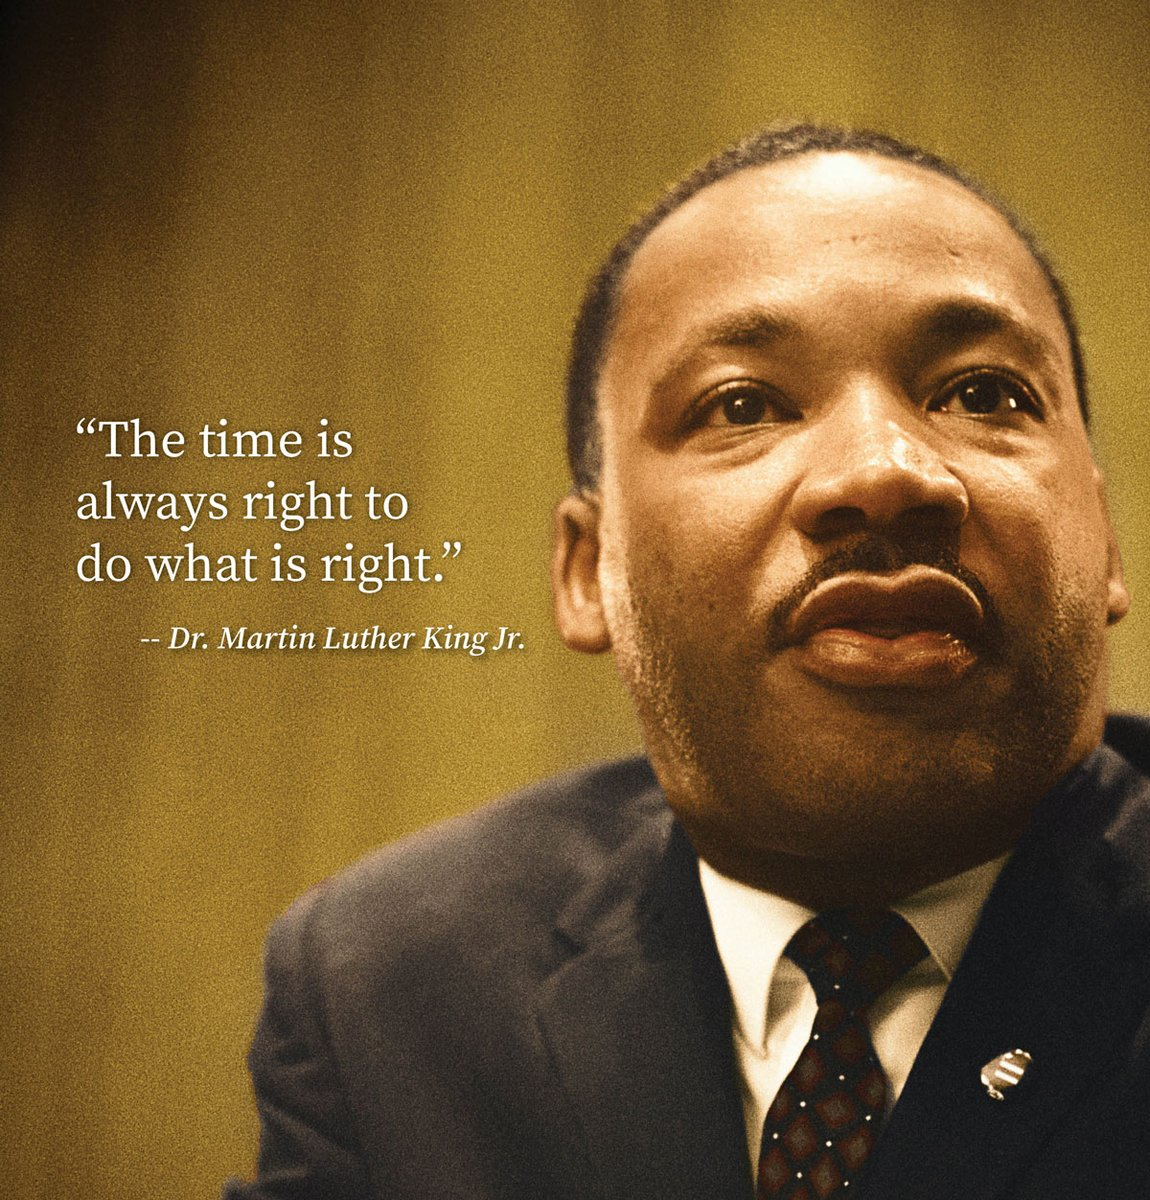 "Our Chairman & CEO Dave Zapico reflects on the below quote from Dr. Martin Luther King Jr.: ""It reminds us of our responsibility to have a positive impact on each other and on our society.""   Join us in honoring Dr. King's memory with acts of compassion & respect. #MLKDay2021 https://t.co/RElFOEg6ey"